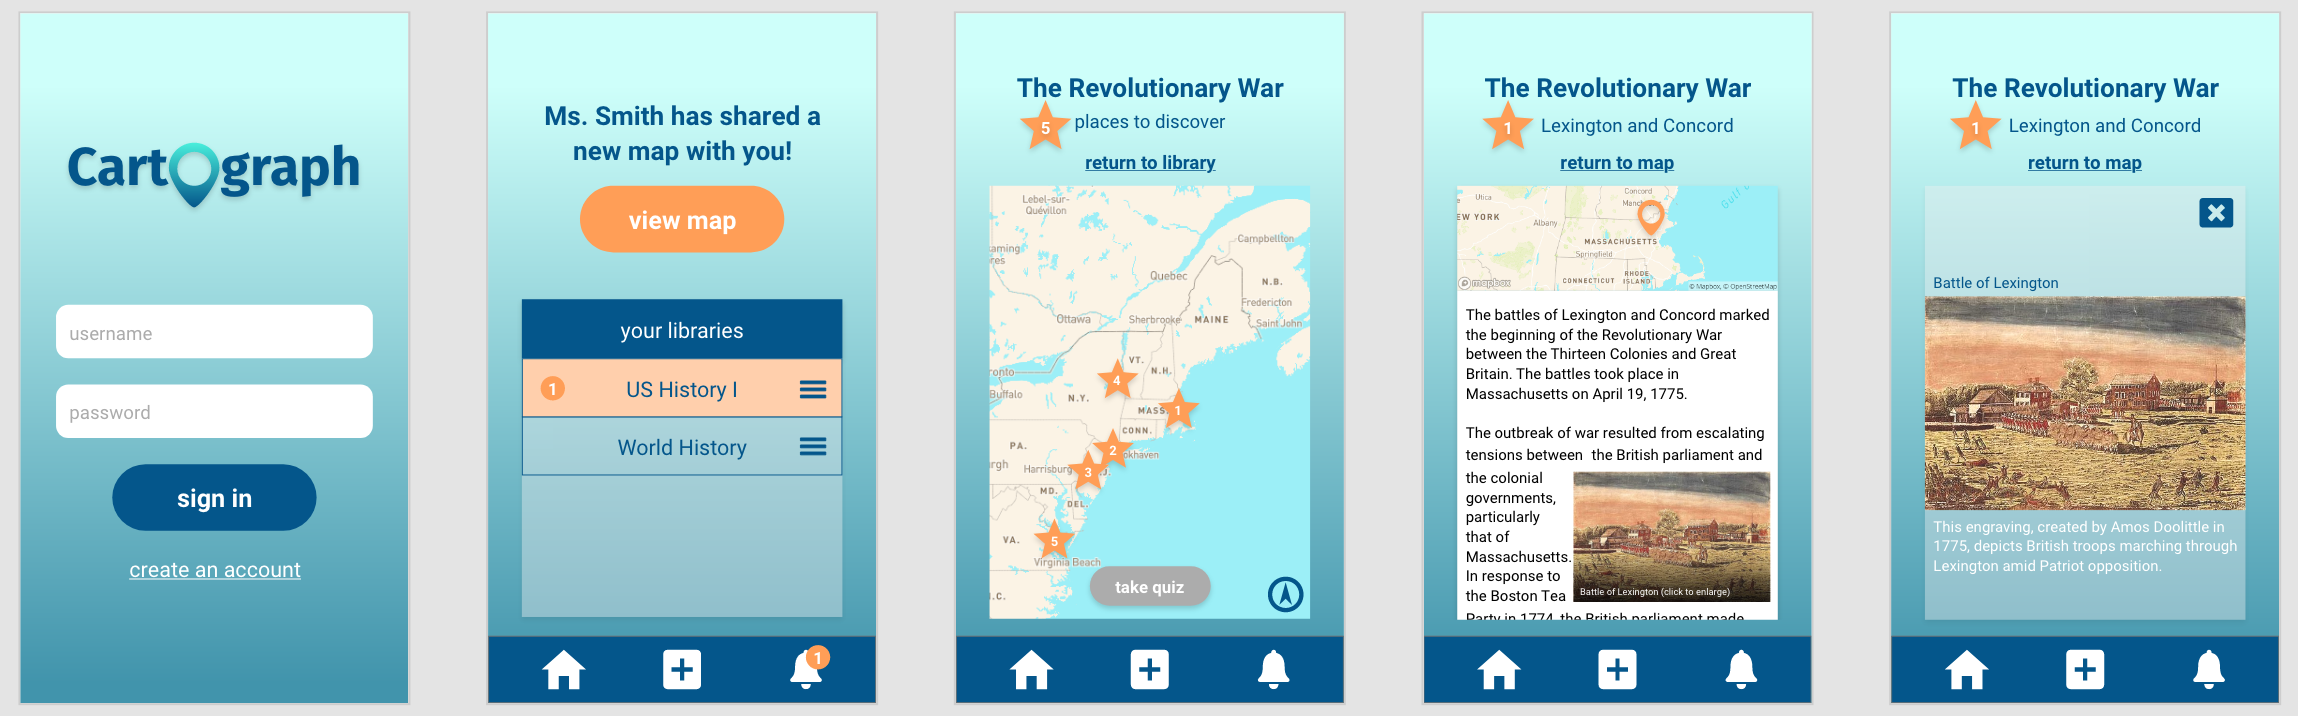 An image depicting five screenshots of the Cartograph app, demonstrating its visual style and design